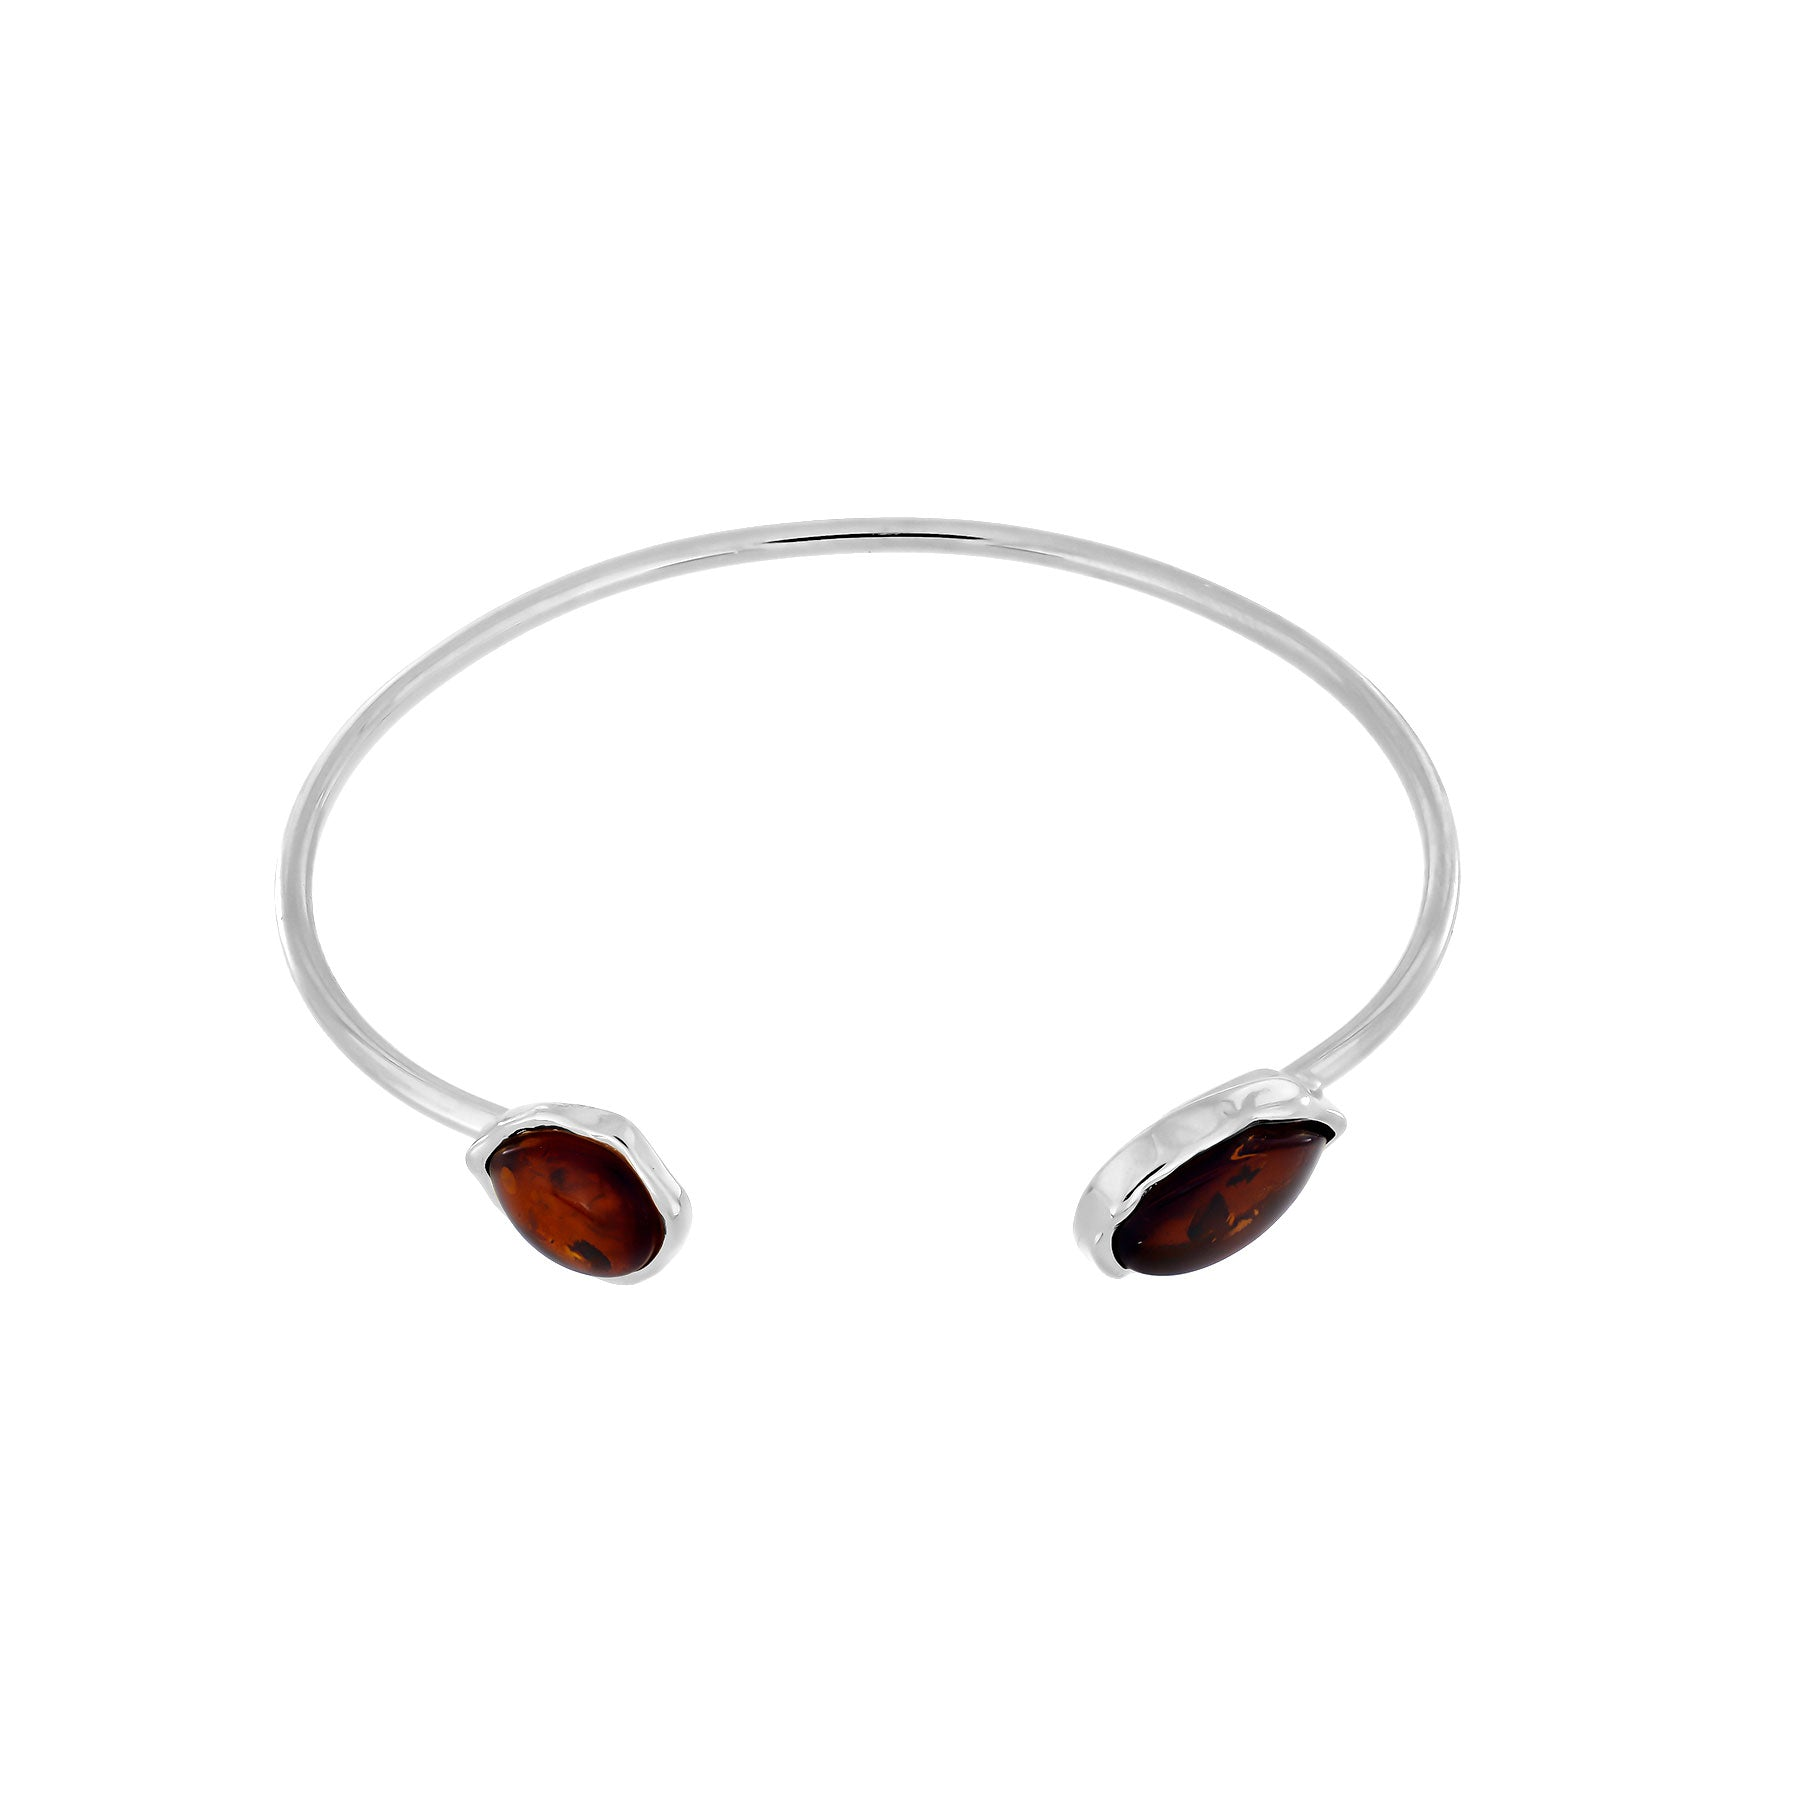 Northern Lights Baltic Amber Cuff in Silver